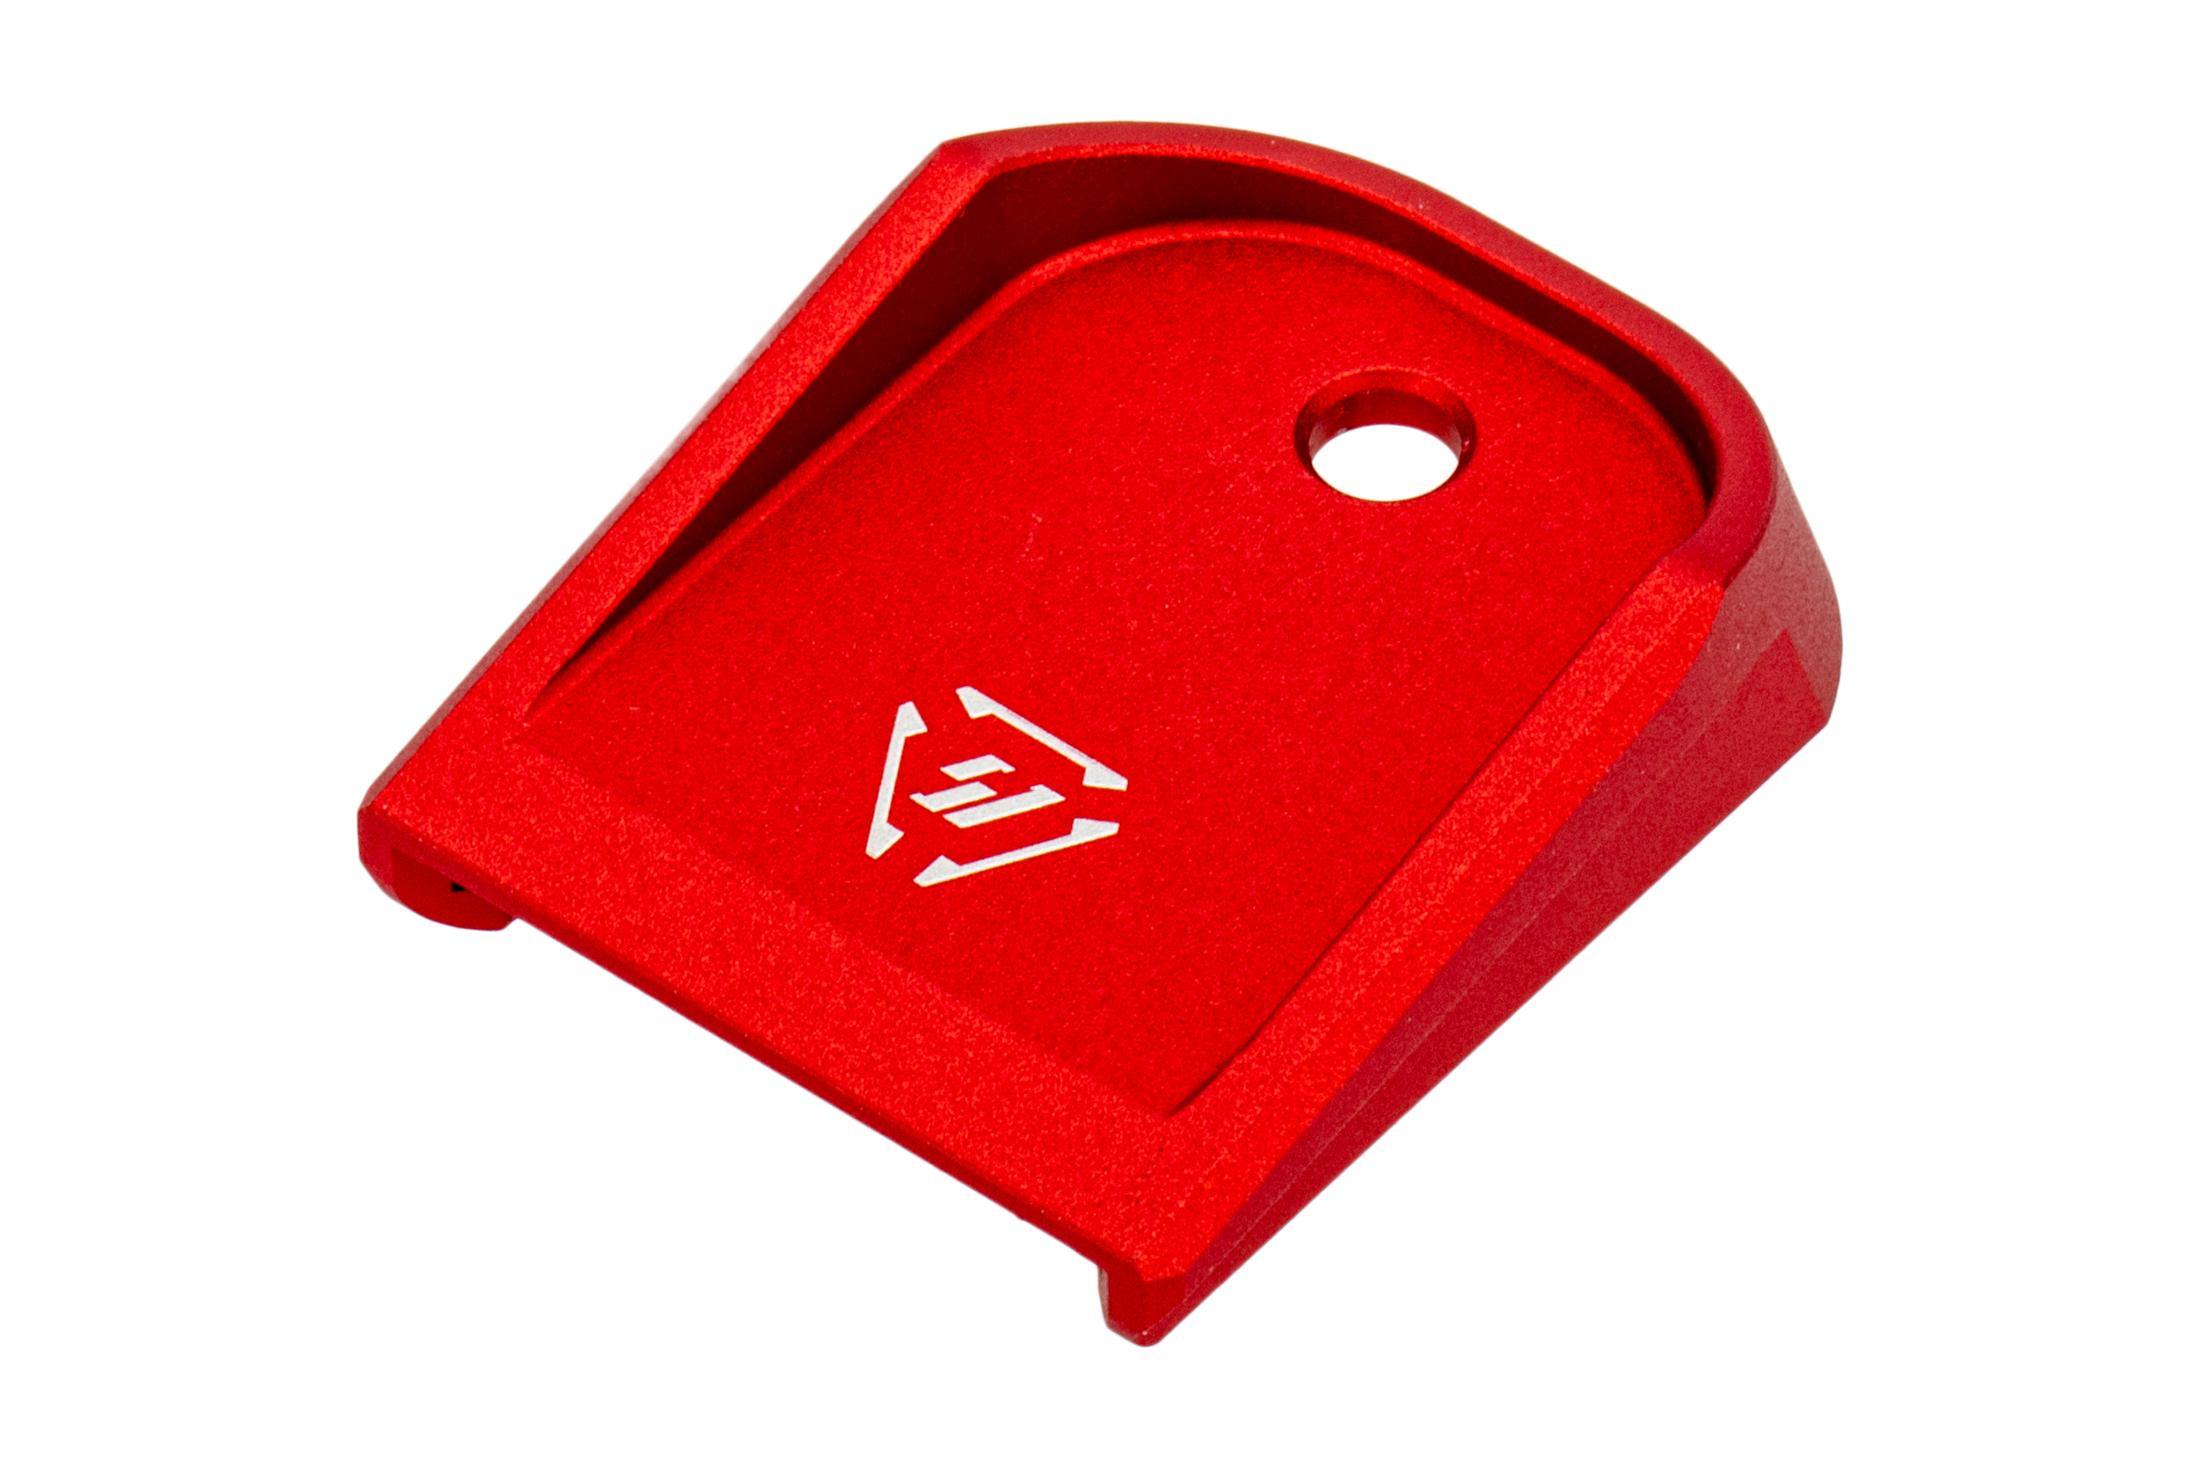 The Strike Industries red anodized aluminum glock magazine base plate is compatible with most models